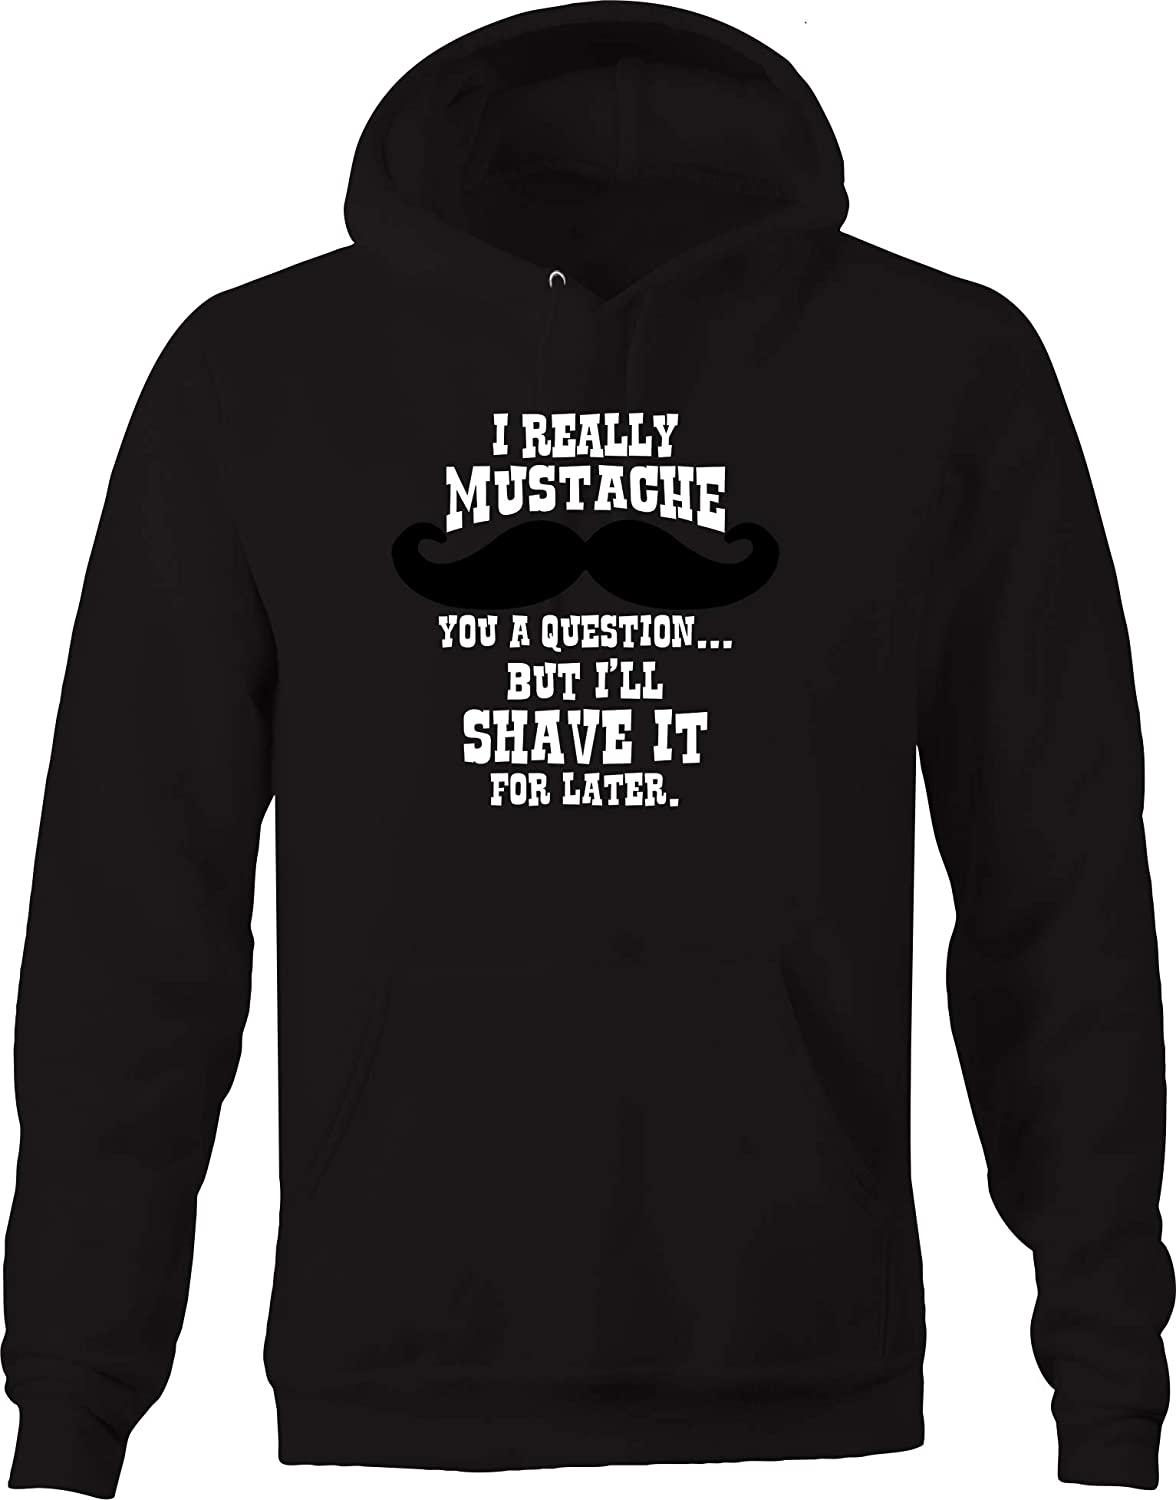 Lifestyle Graphix I Really Mustache You a Question but Ill Shave it for Later Hoodies for Men